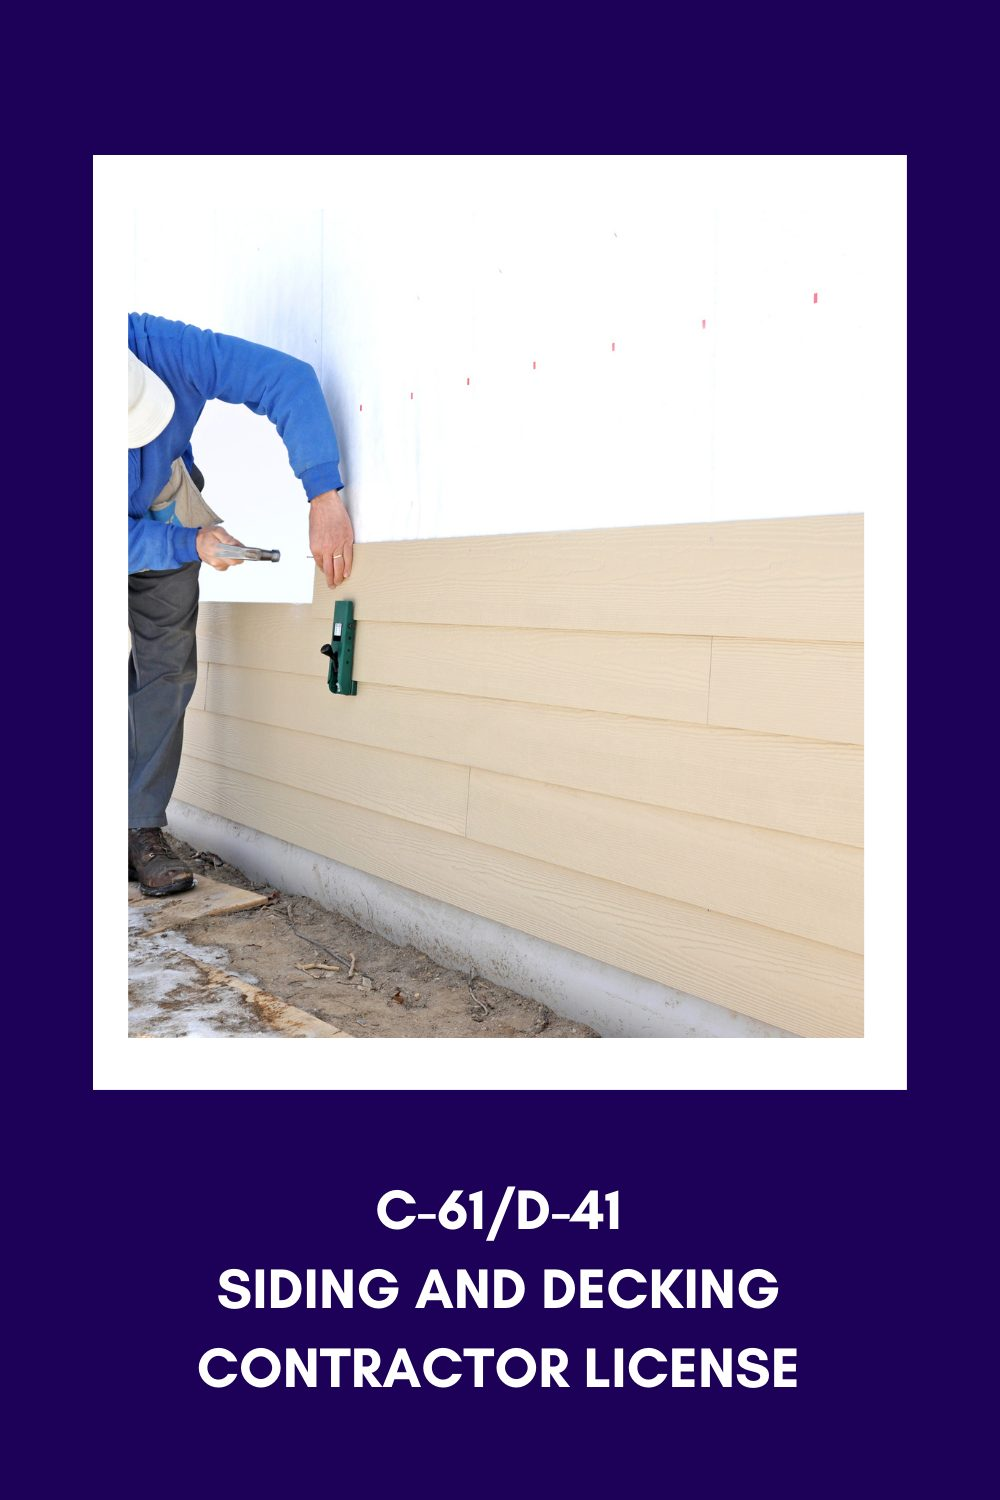 what can you do with a C-61 license under the D-40 classification for siding and decking contractors in california